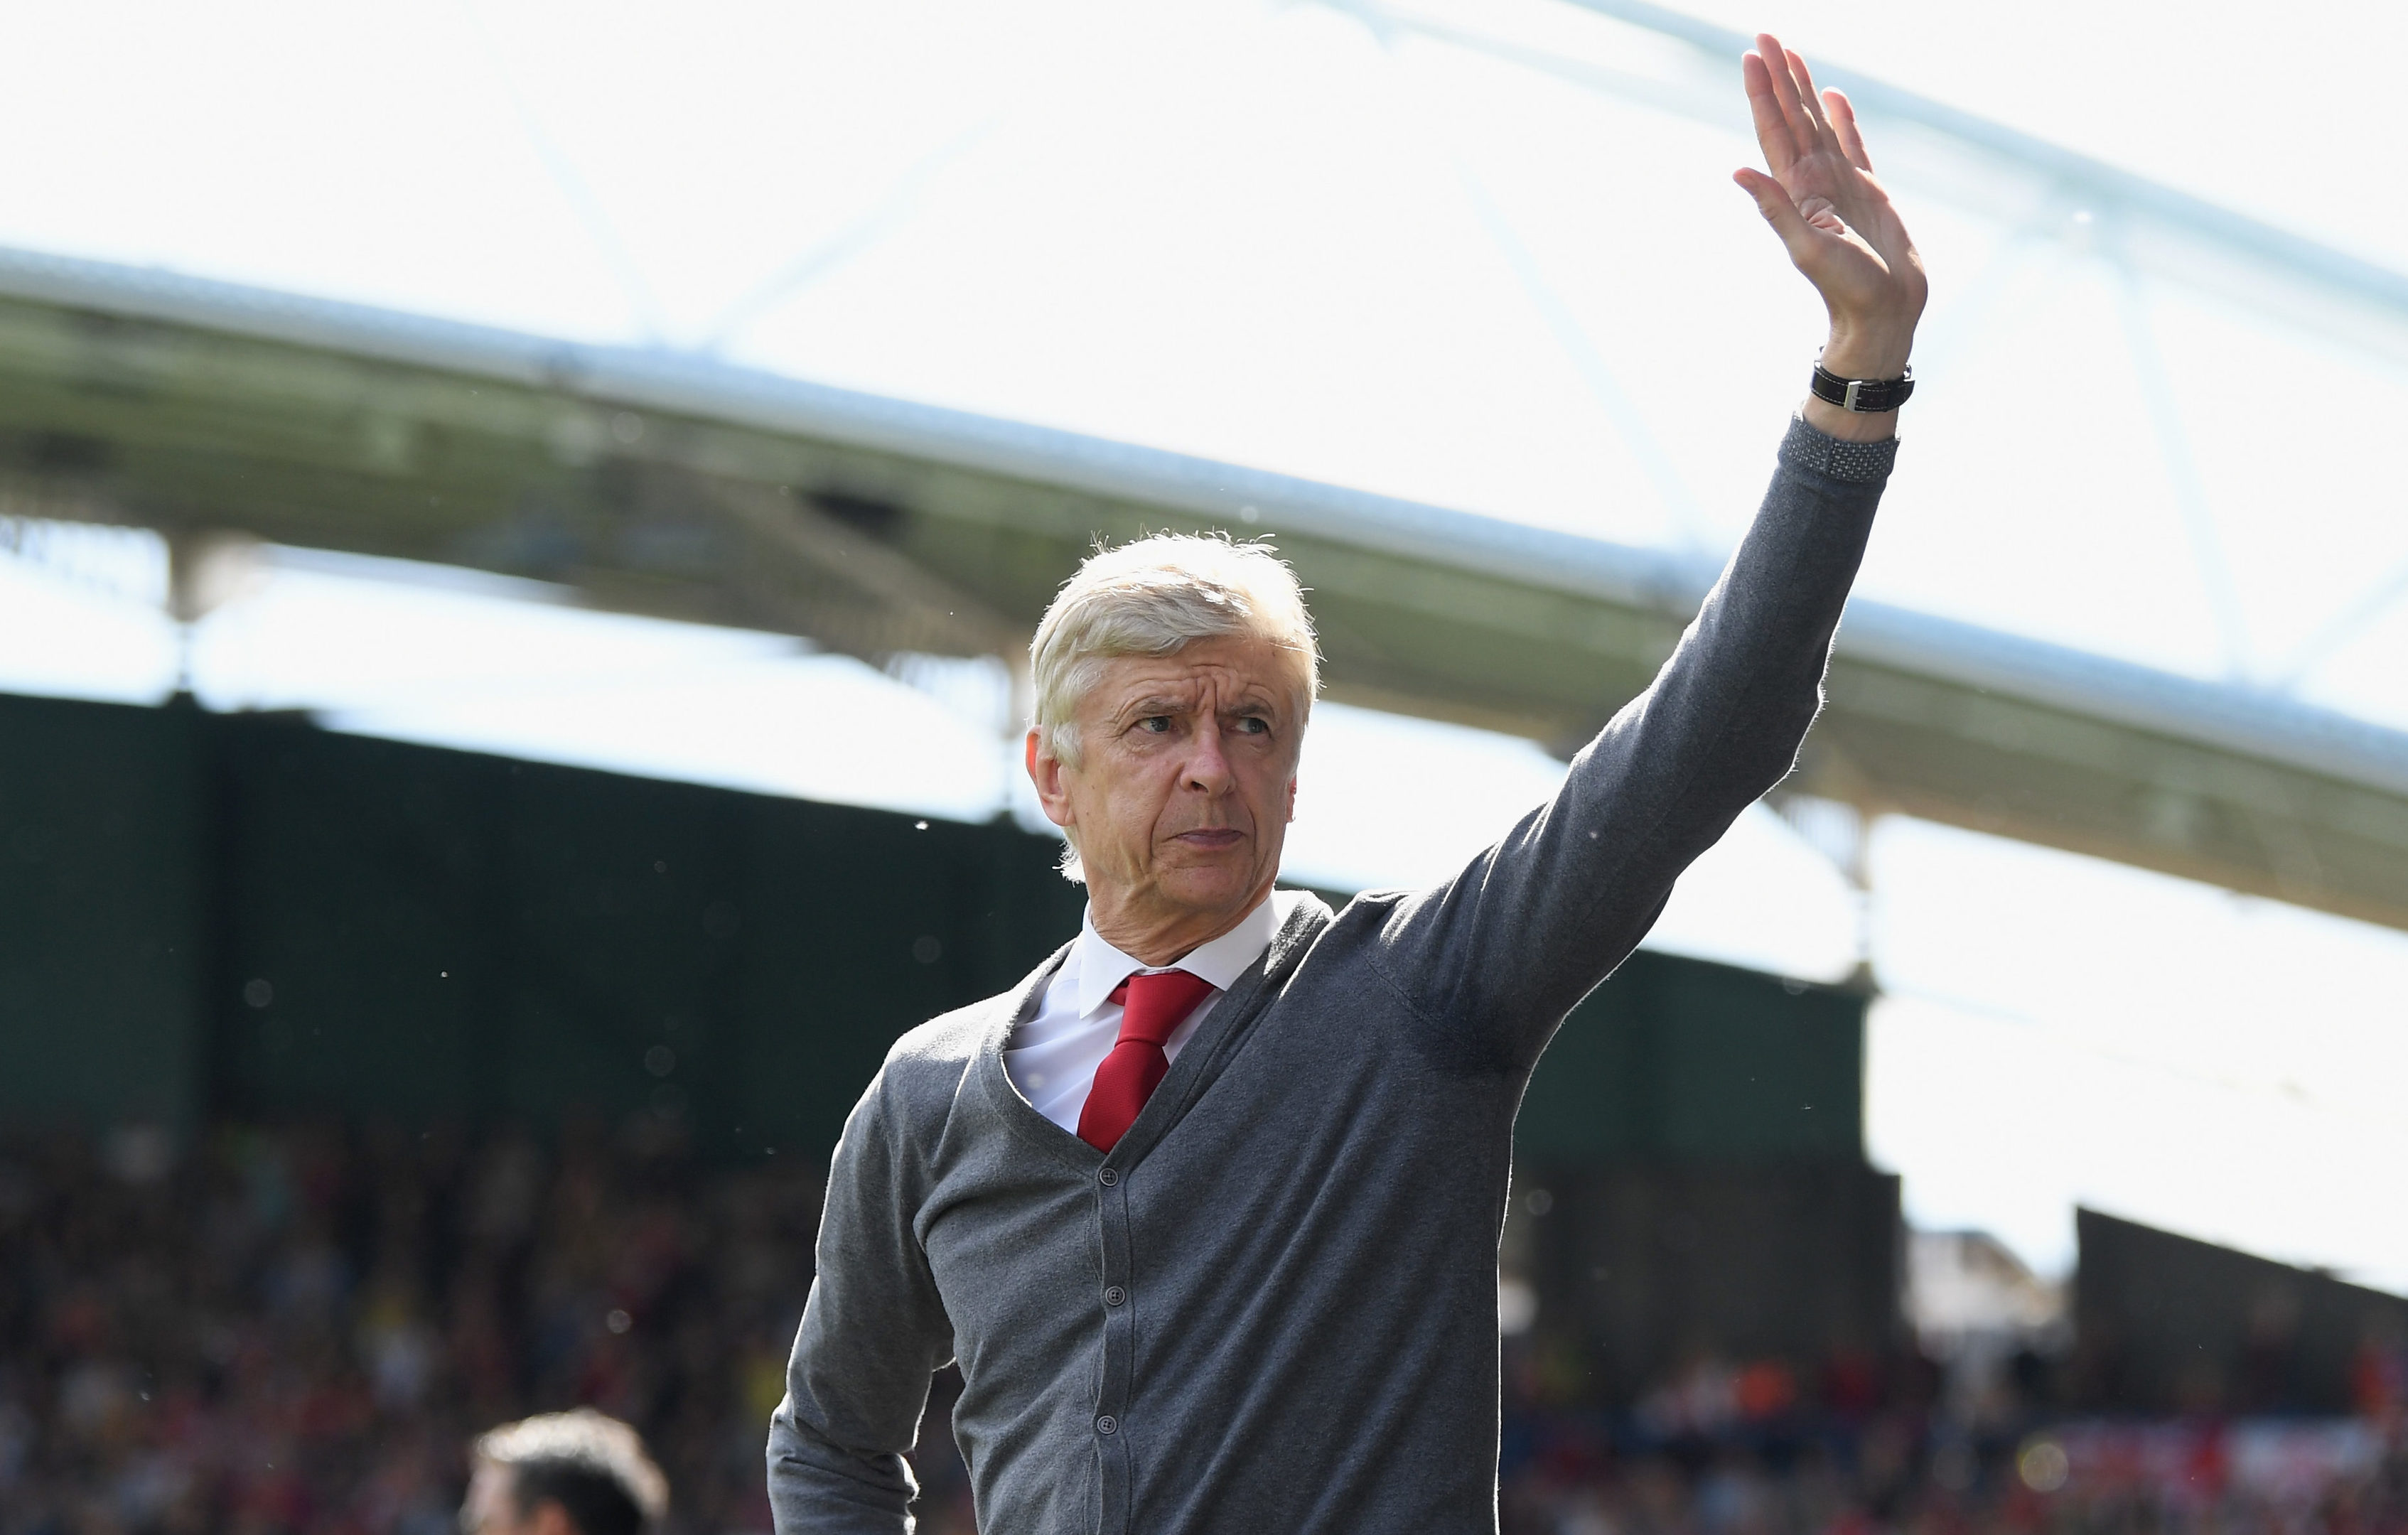 Arsenal manager Arsene Wenger bids farewell (Shaun Botterill/Getty Images)